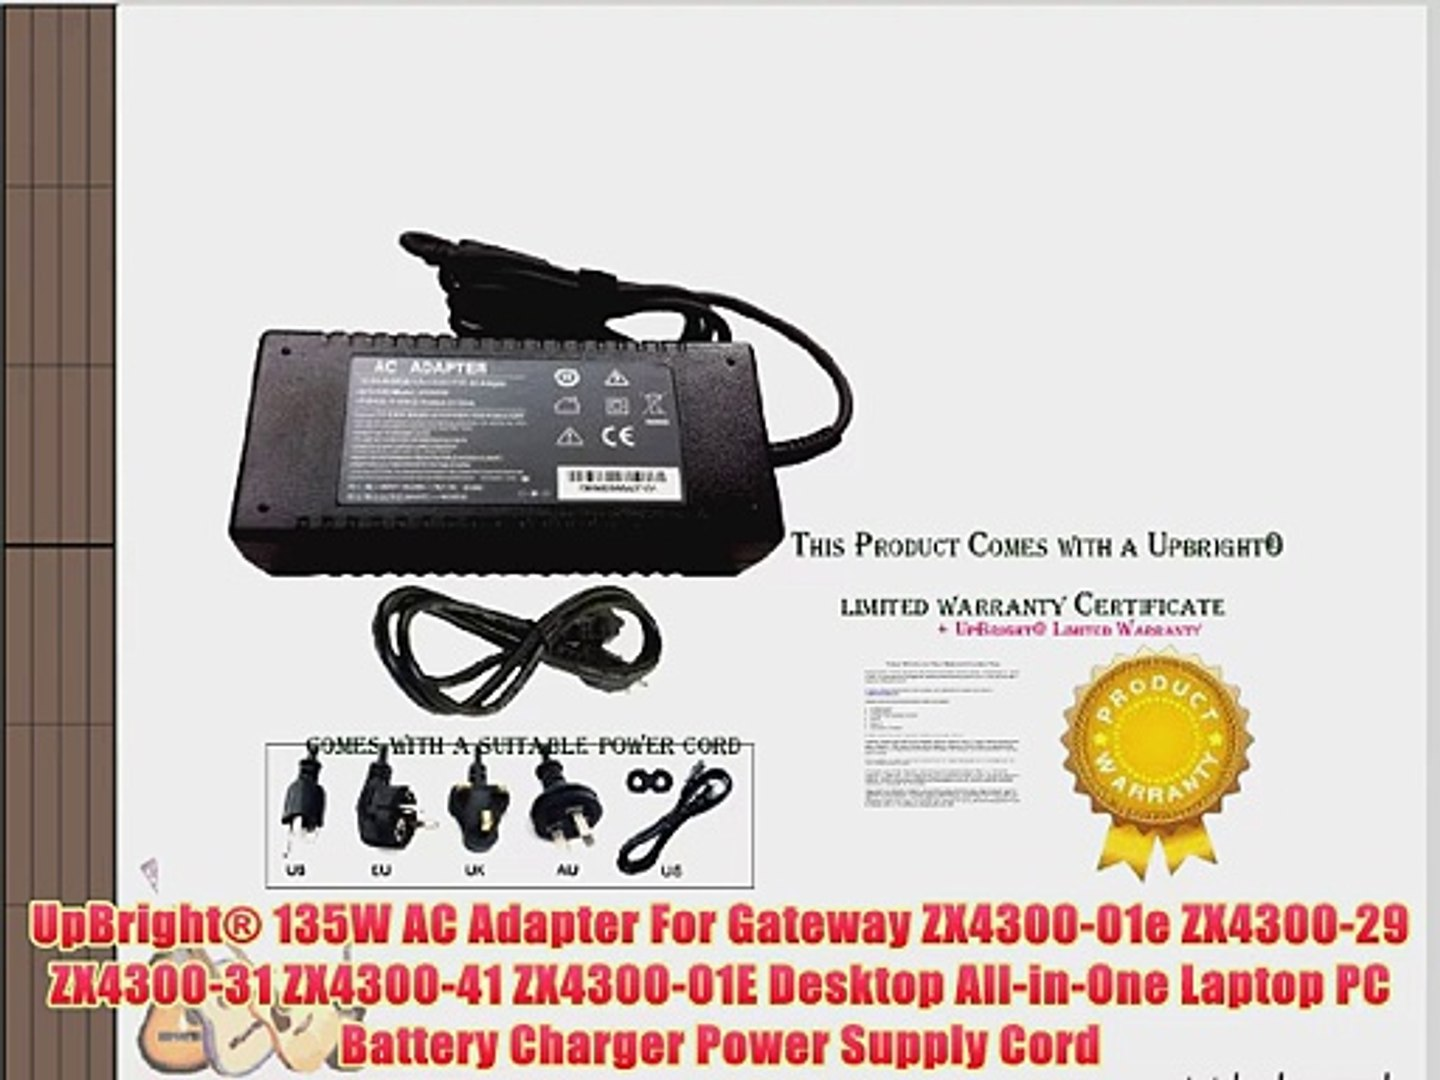 UpBright? 135W AC Adapter For Gateway ZX4300-01e ZX4300-29 ZX4300-31  ZX4300-41 ZX4300-01E Desktop